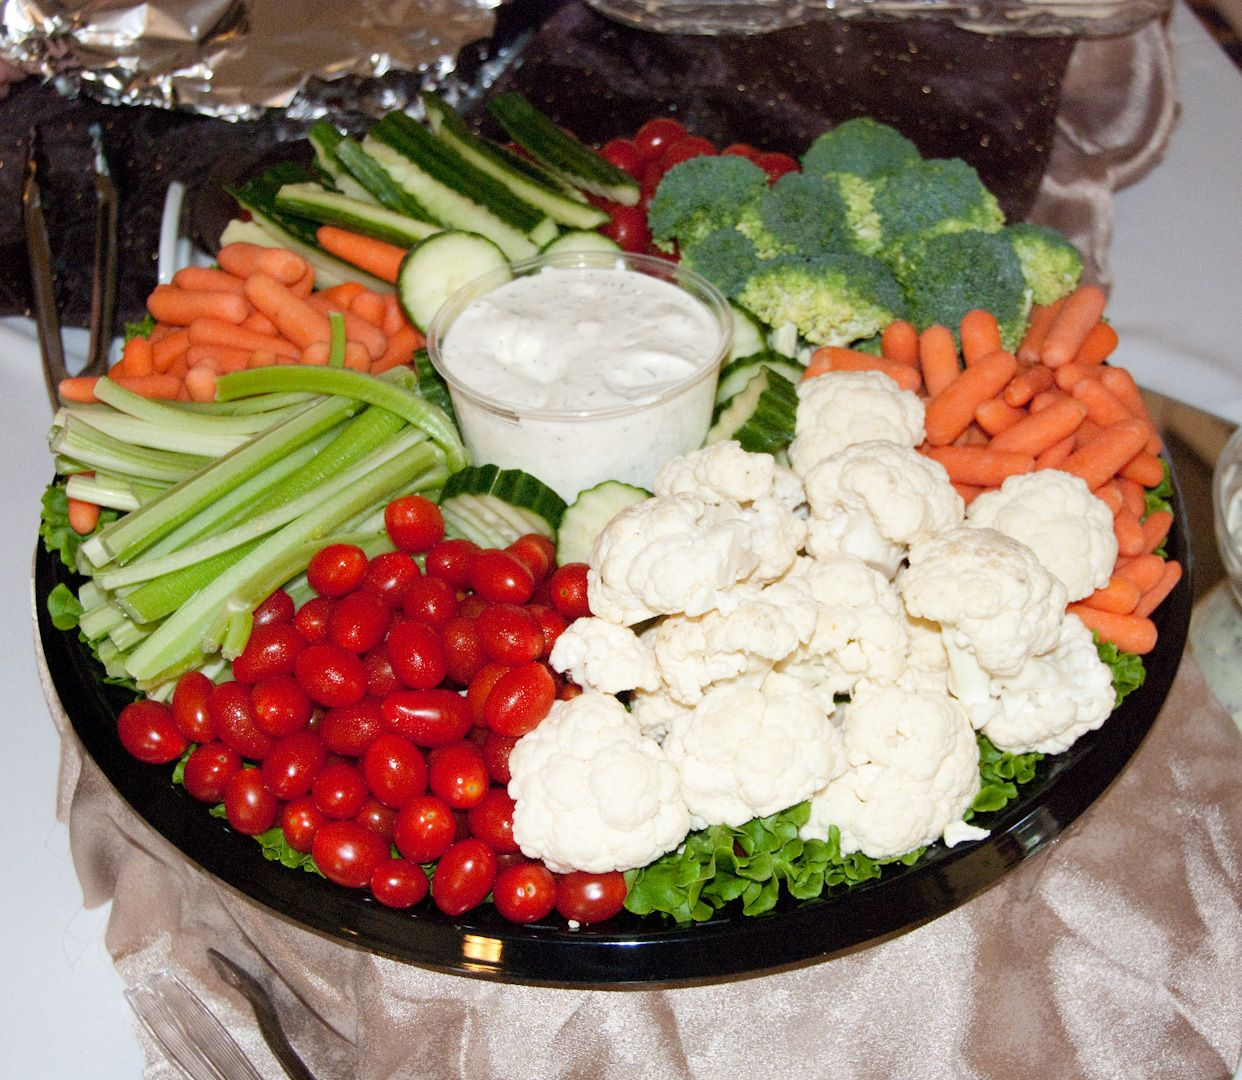 Costco meat trays pin by misti frazier on veggie cheese fruit relish